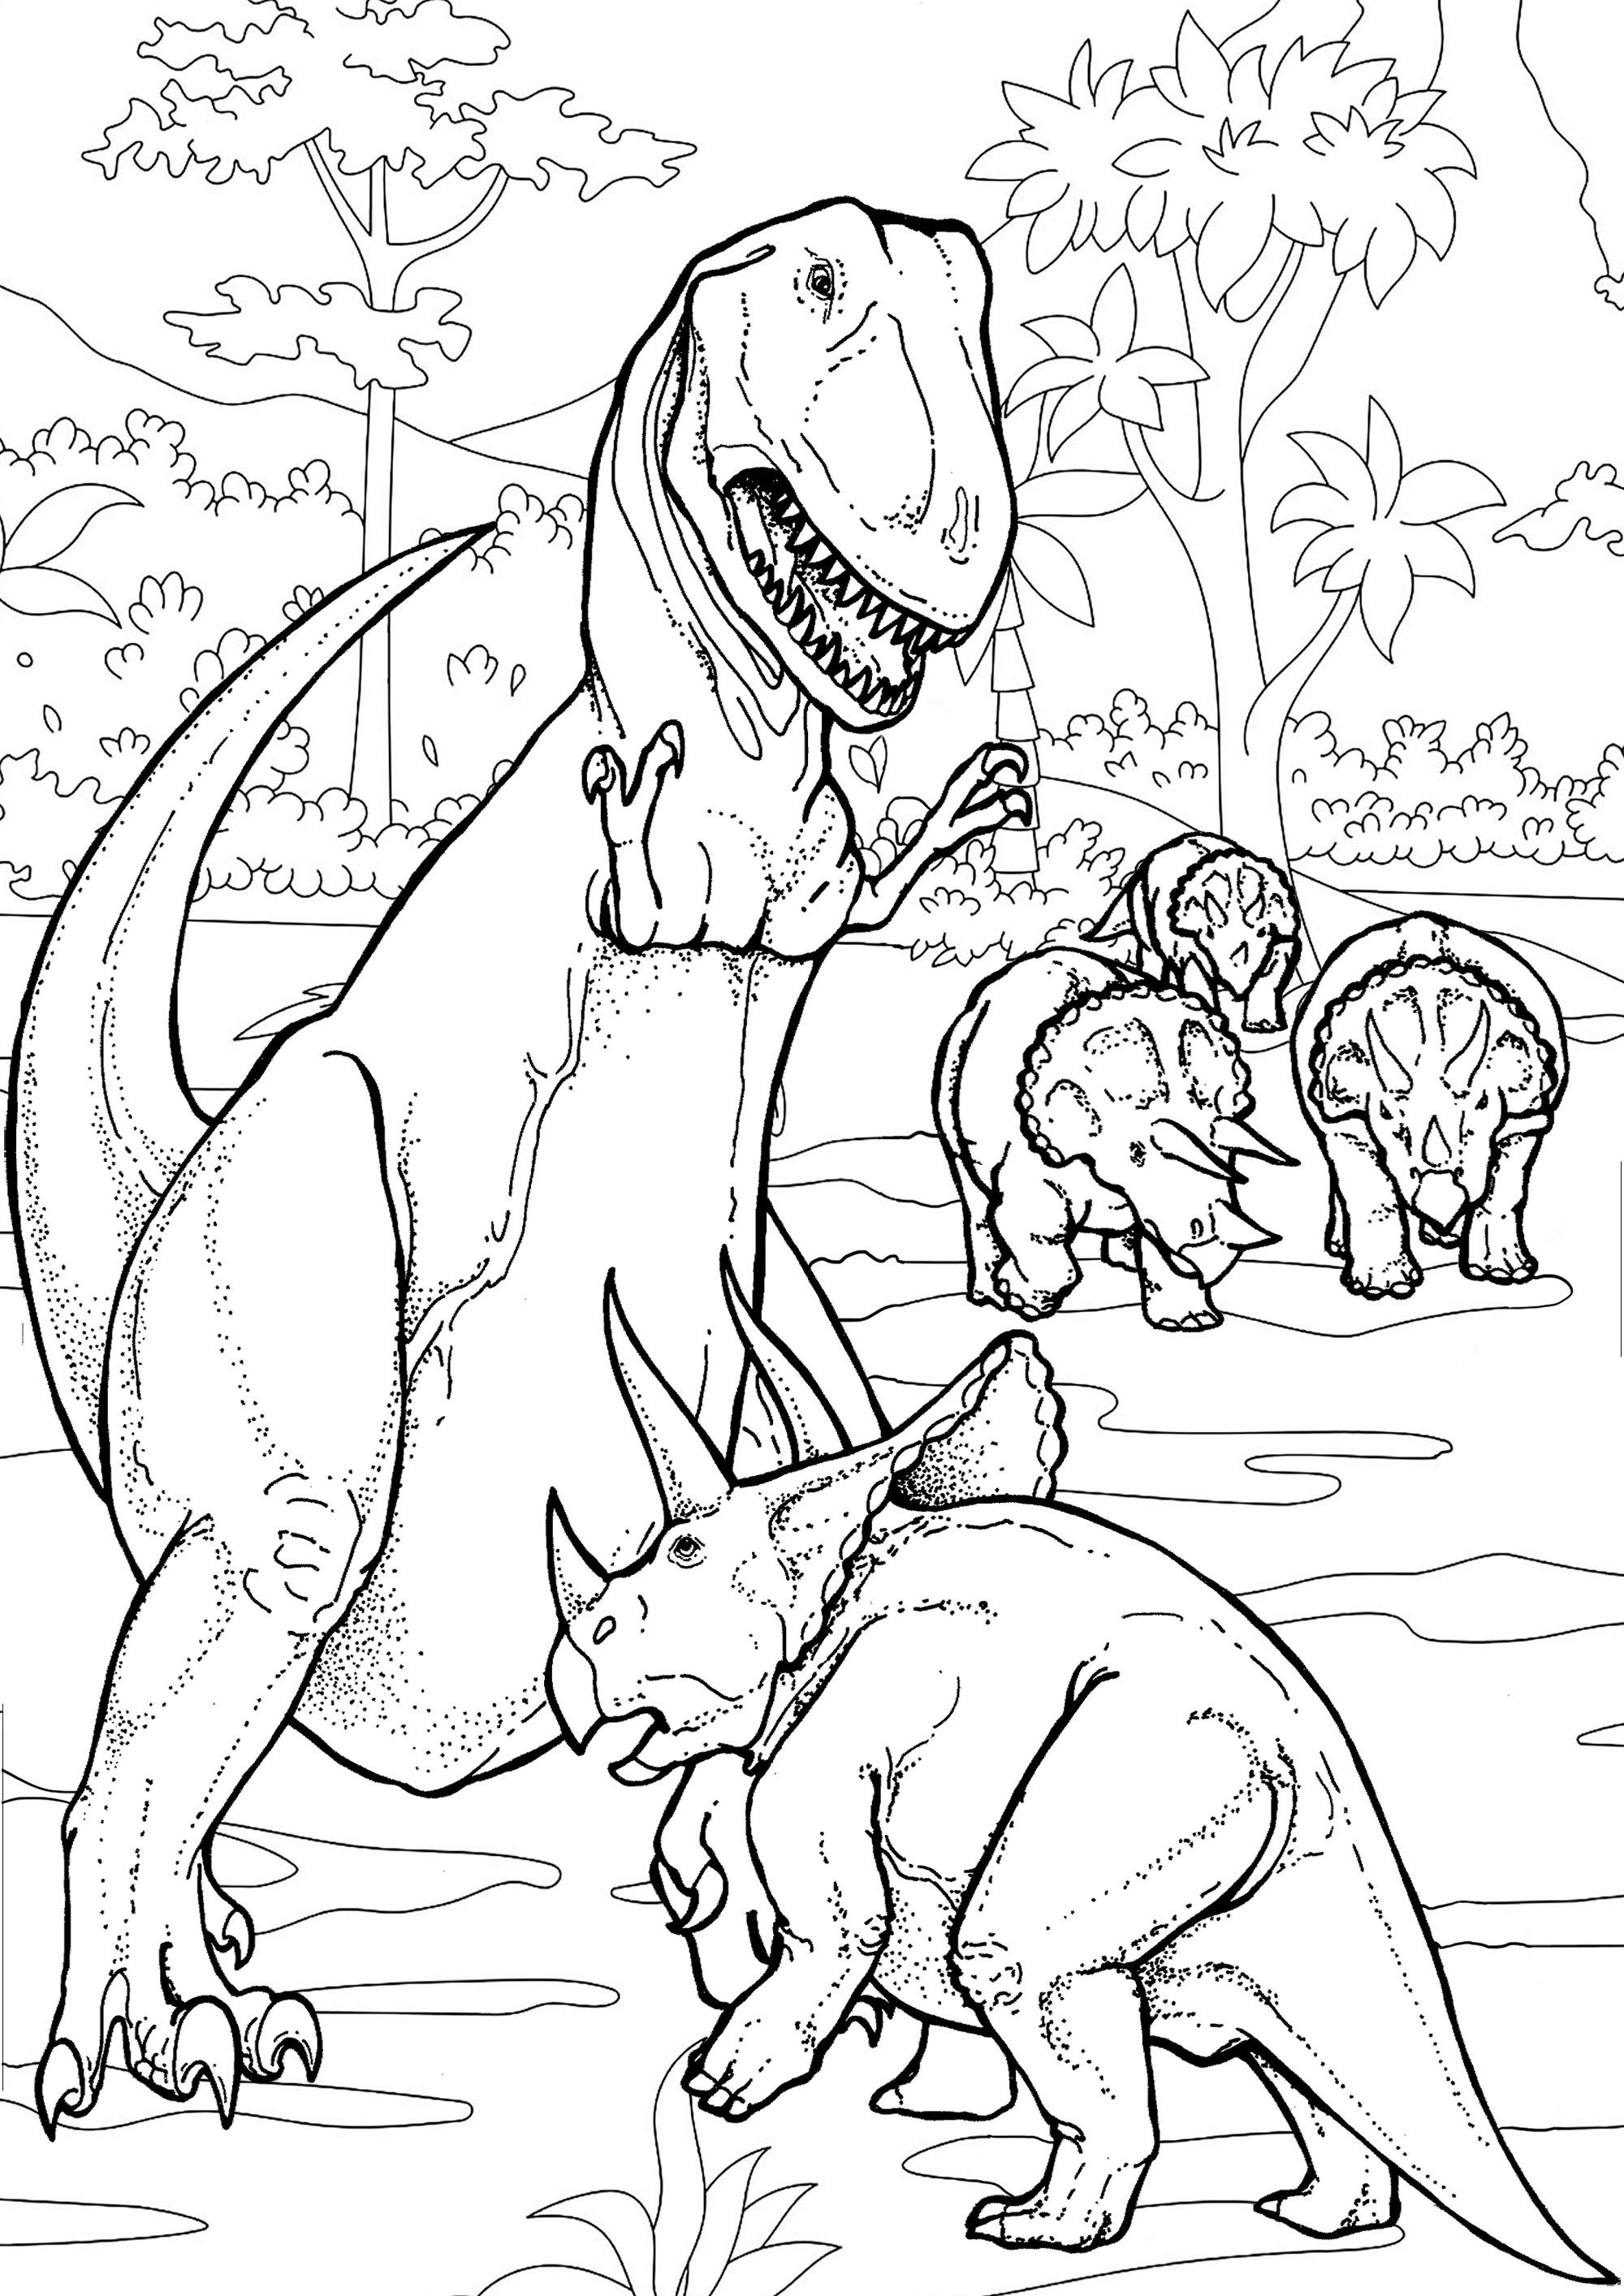 Dinosaurs Battle Dinosaurs Coloring Pages for Adults